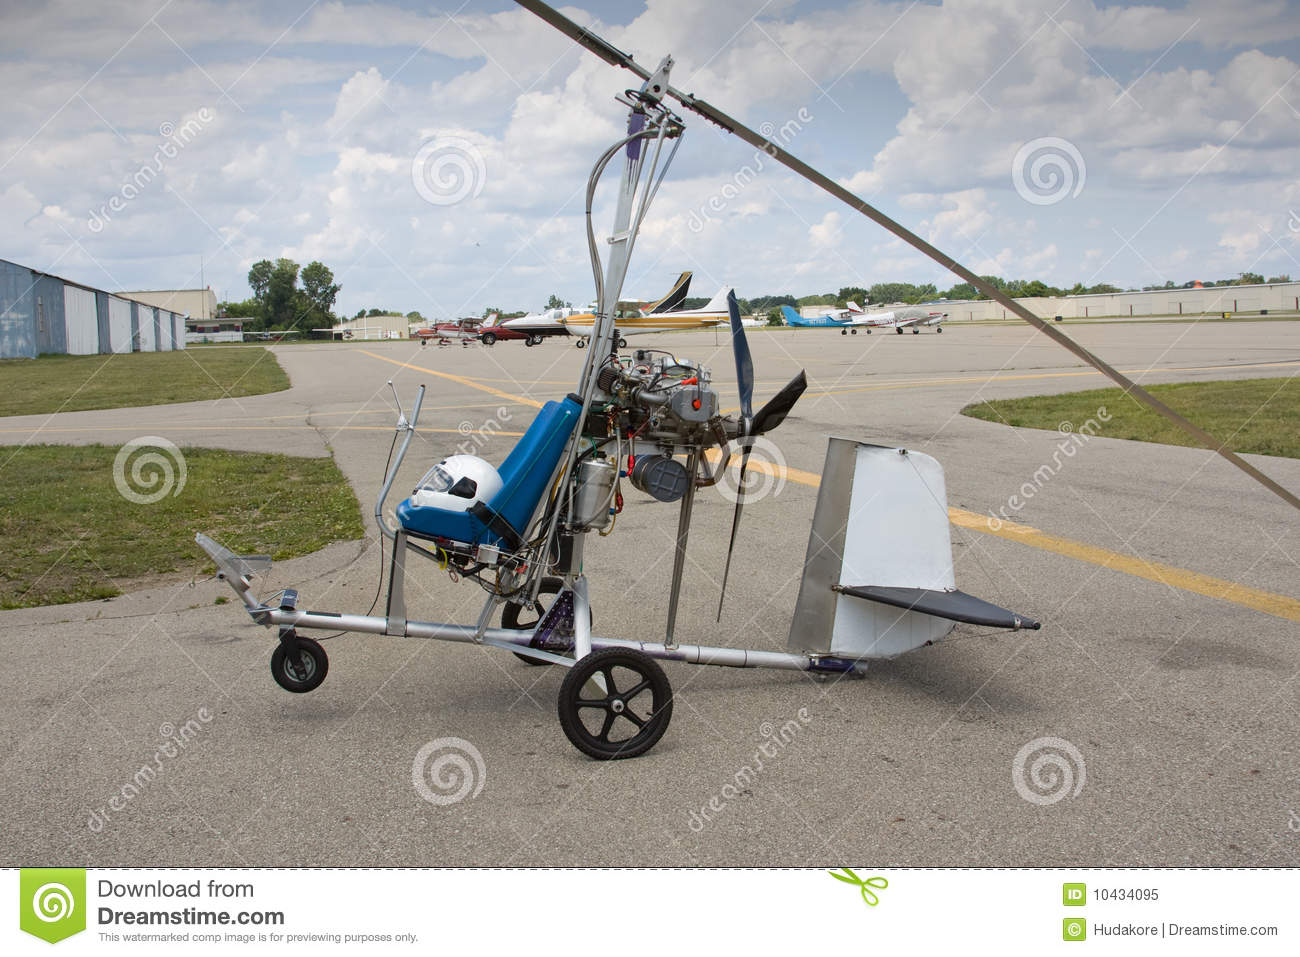 how to make a gyrocopter unturned